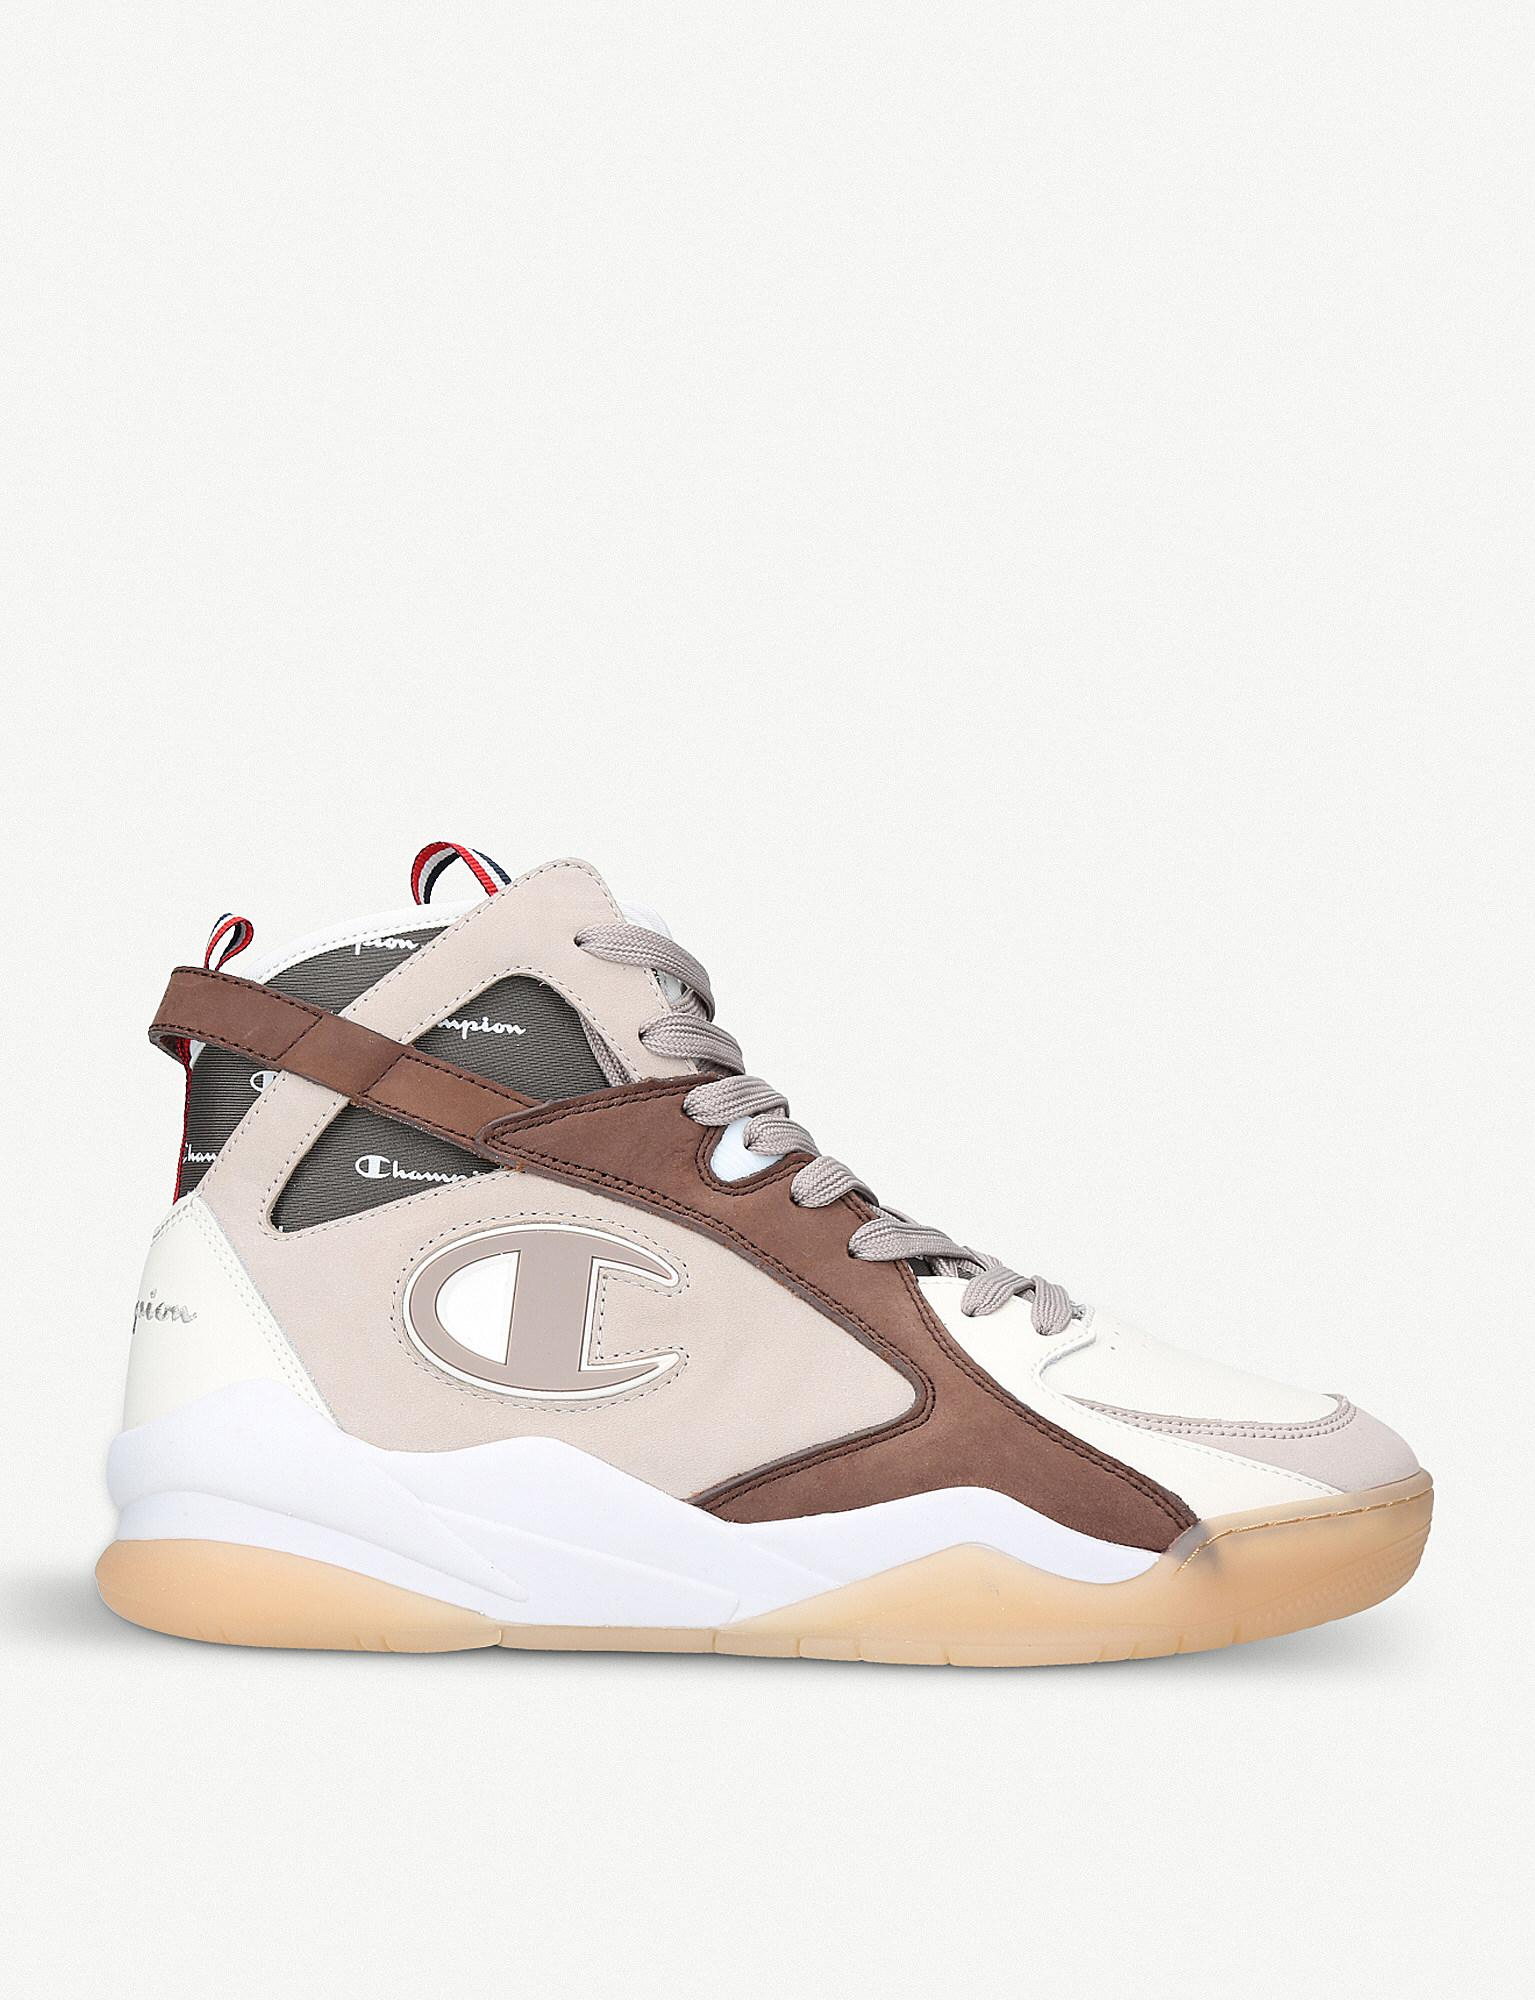 2f9383ae6cd72 Lyst - Champion Zone 93 High-top Leather And Suede Trainers